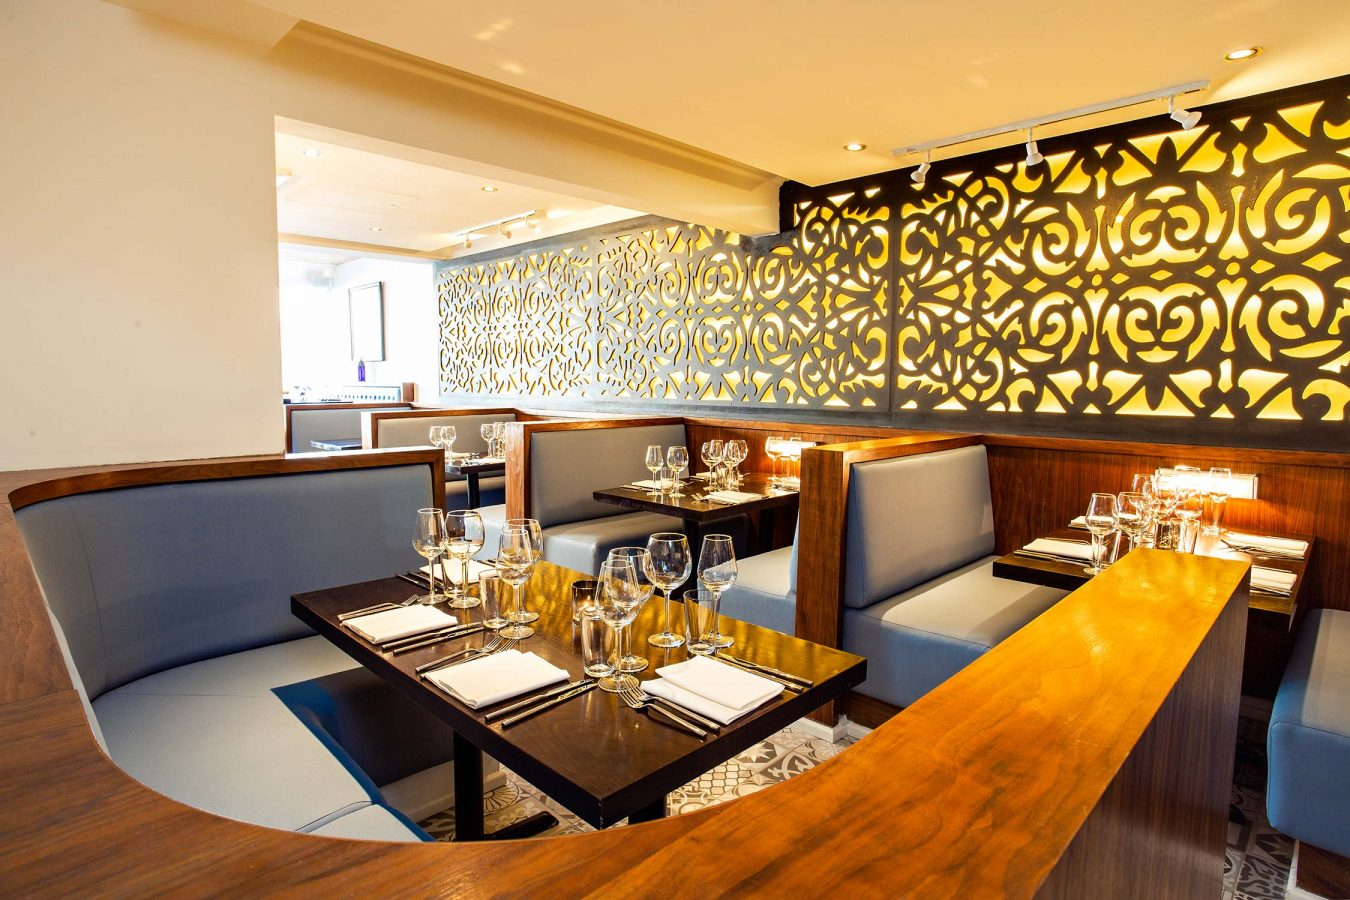 restaurant-interior-photographer-london-cambridge